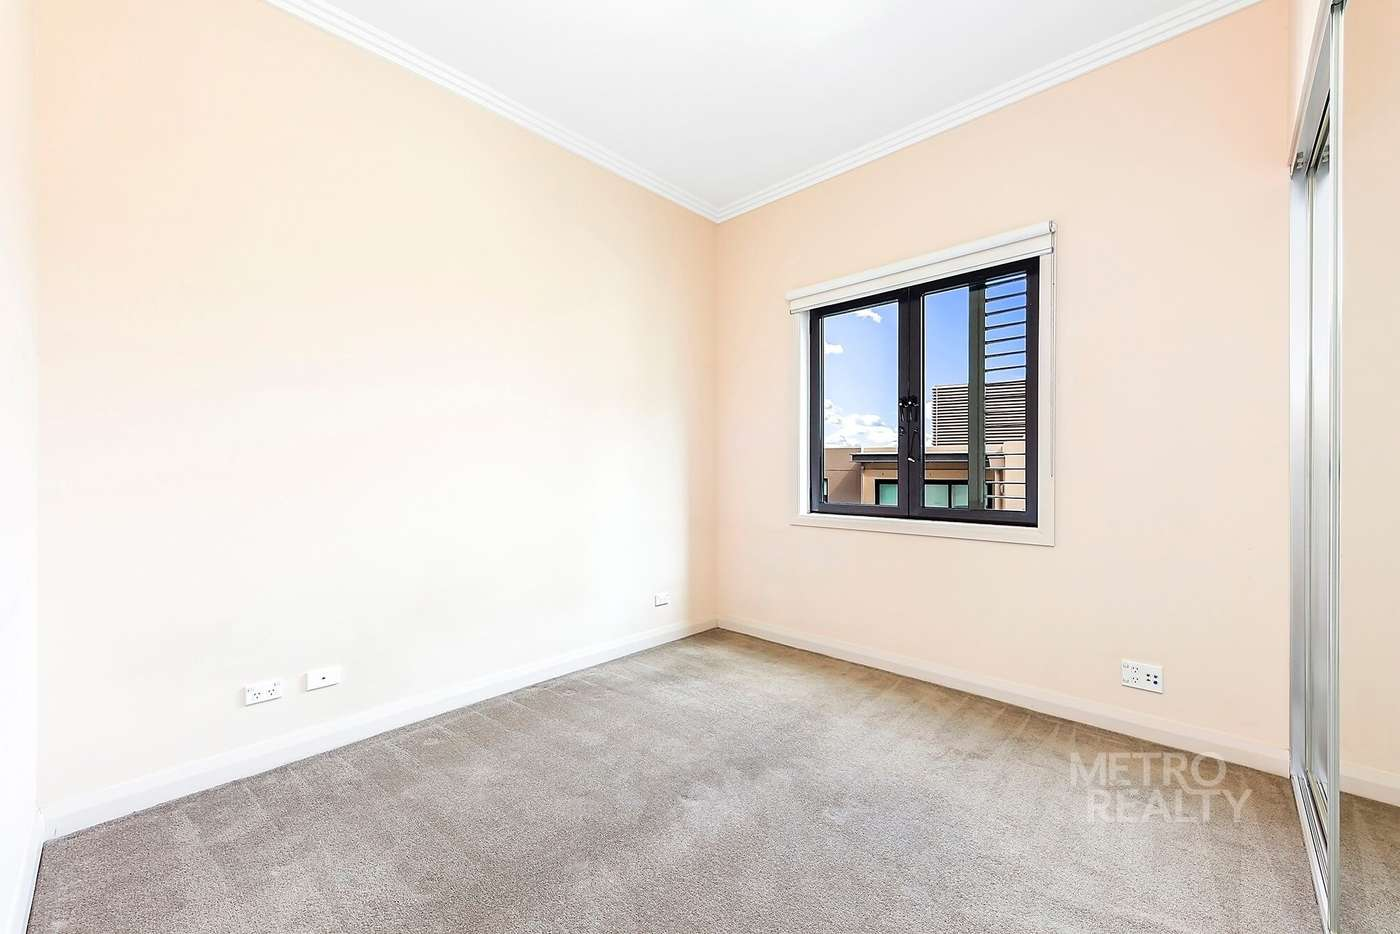 Fifth view of Homely apartment listing, 14/15 Angas Street, Meadowbank NSW 2114